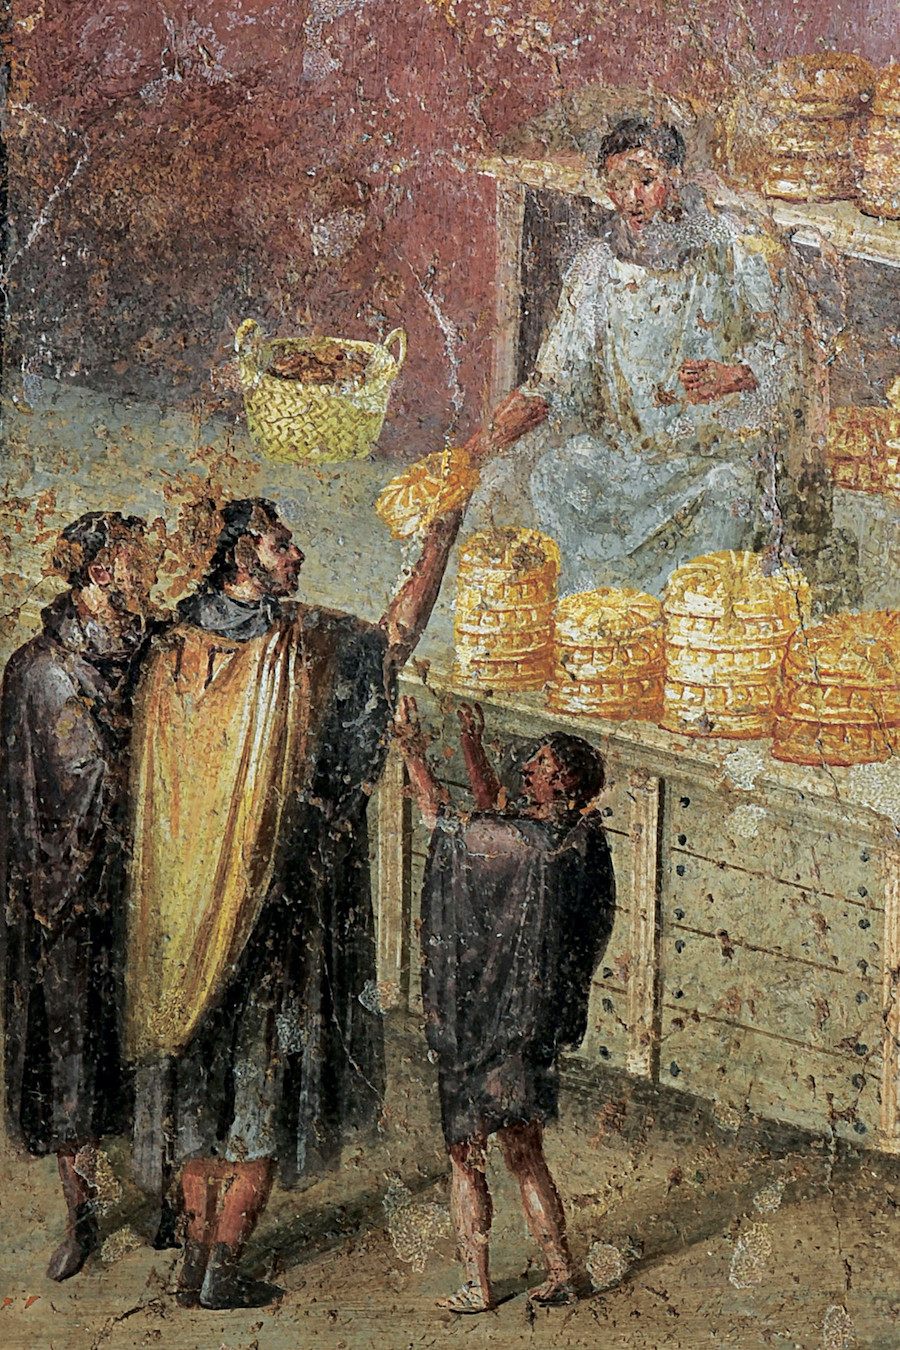 Color fresco showing man passing bread to another man